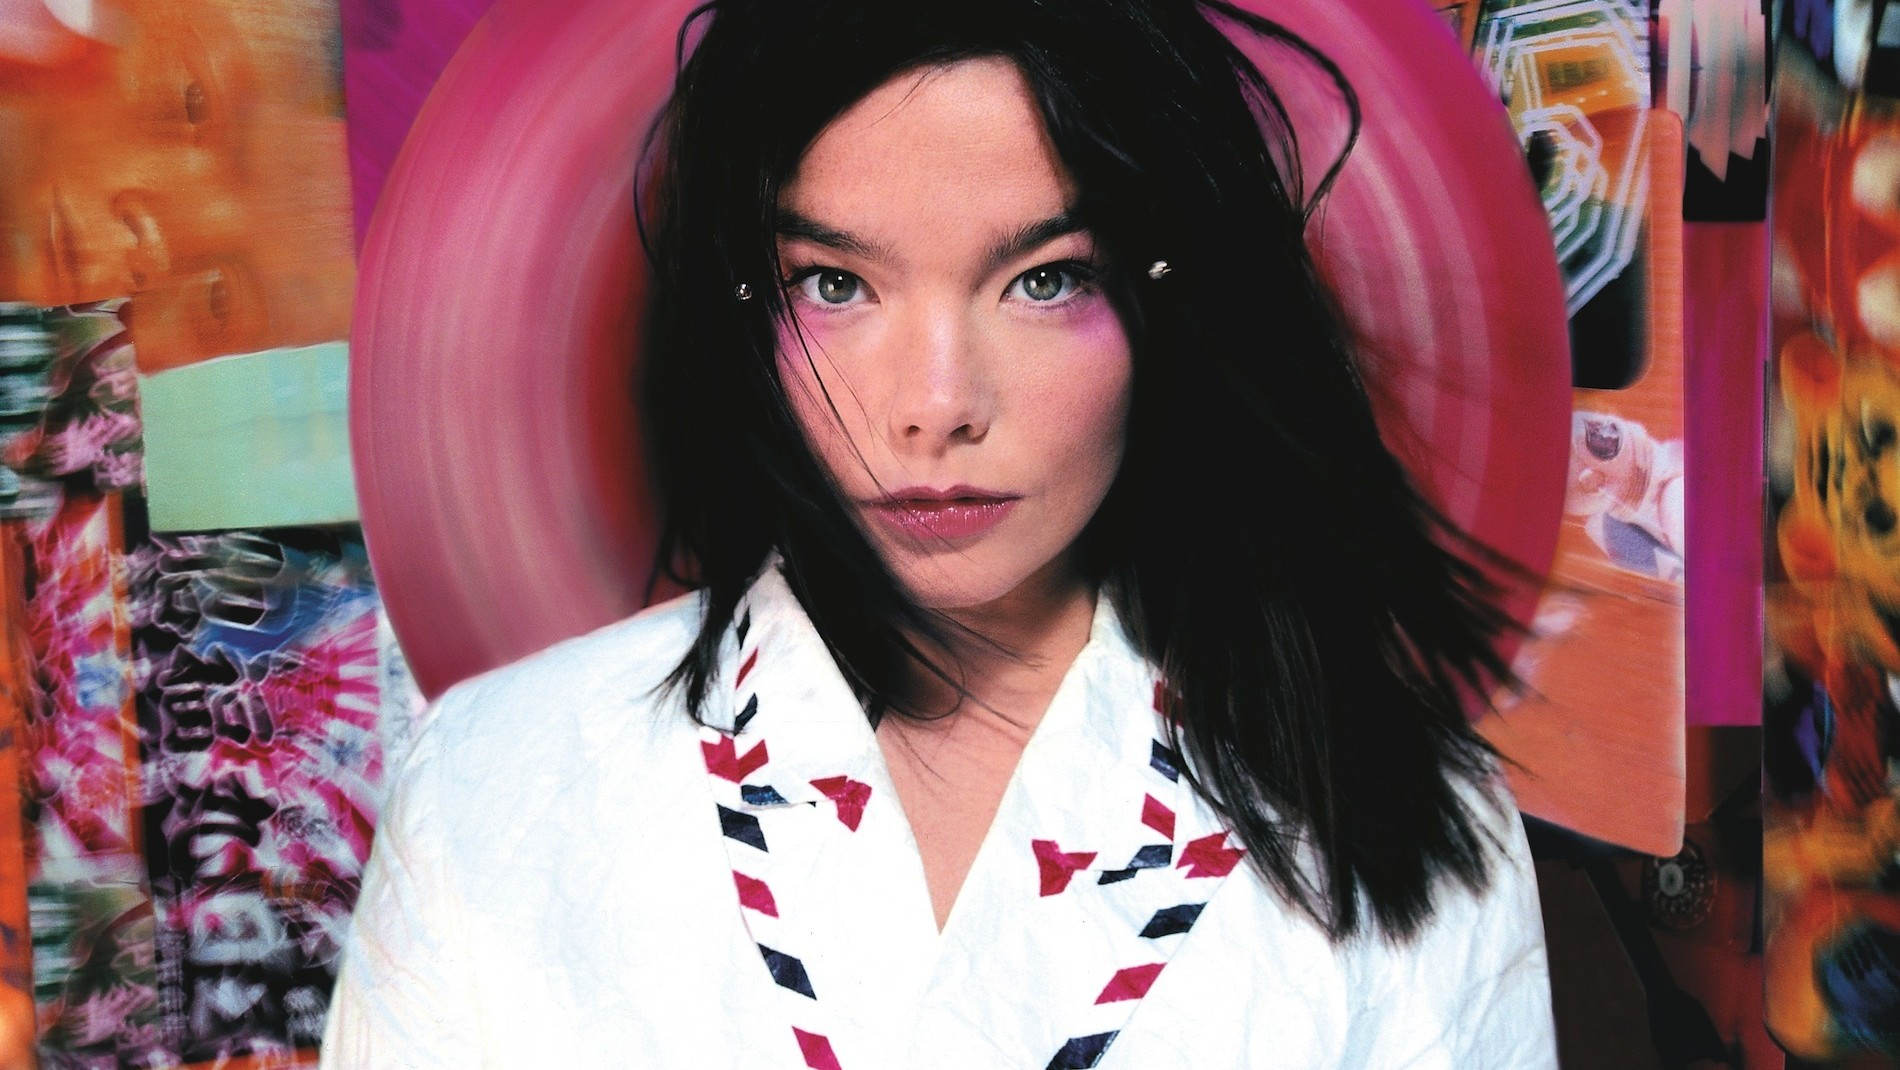 beyond the swan: the most amazing looks from björk's moma retrospective